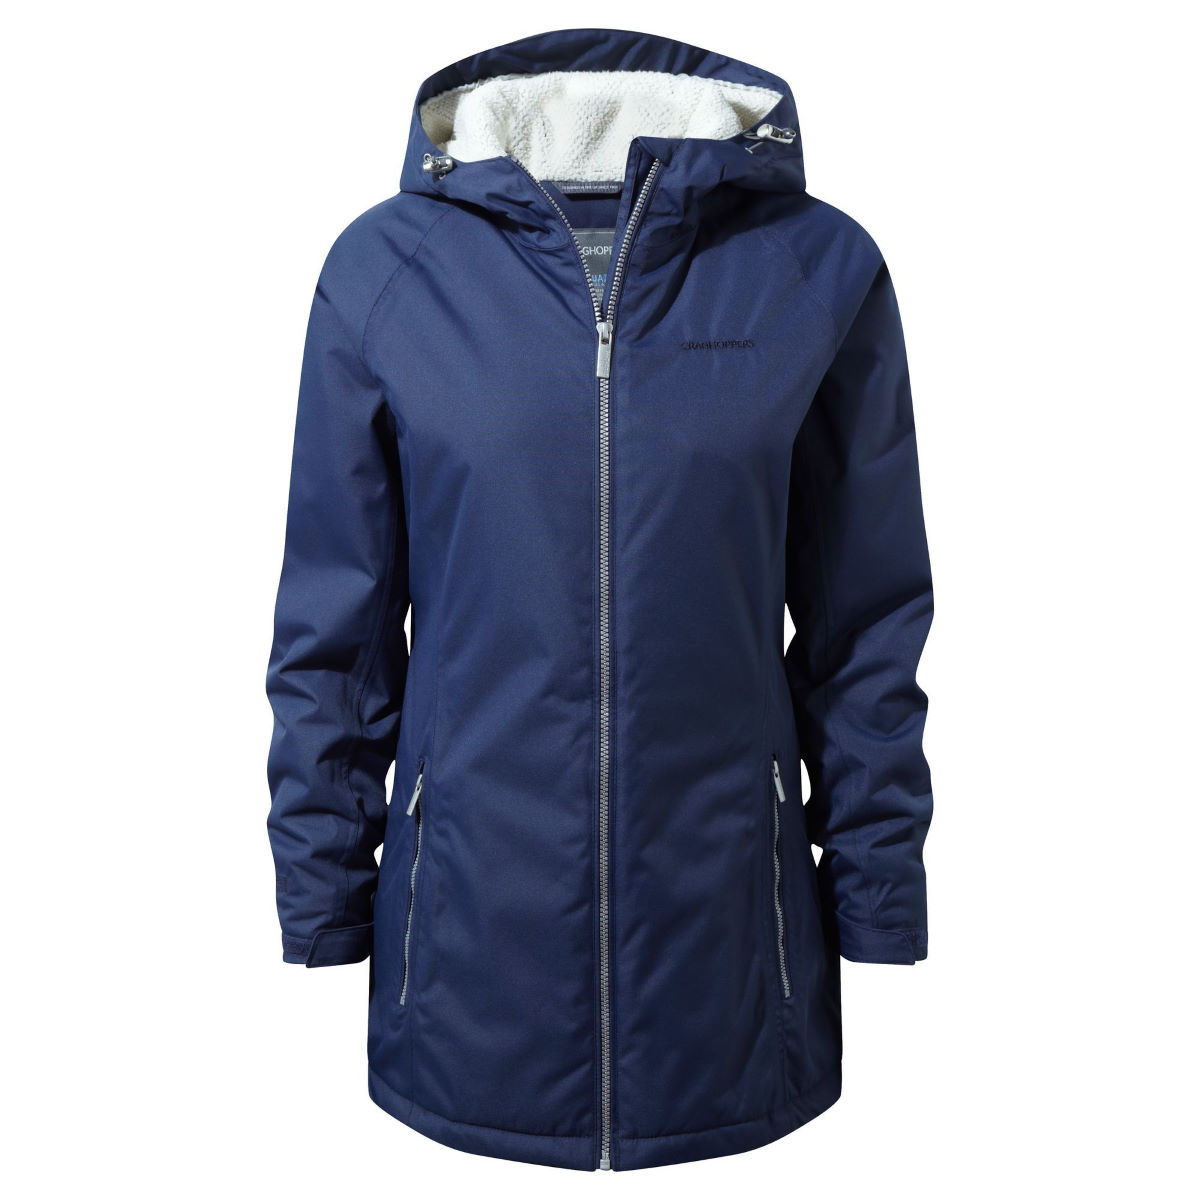 Chaqueta Craghoppers Madigan Classic Thermic II para mujer - Chaquetas